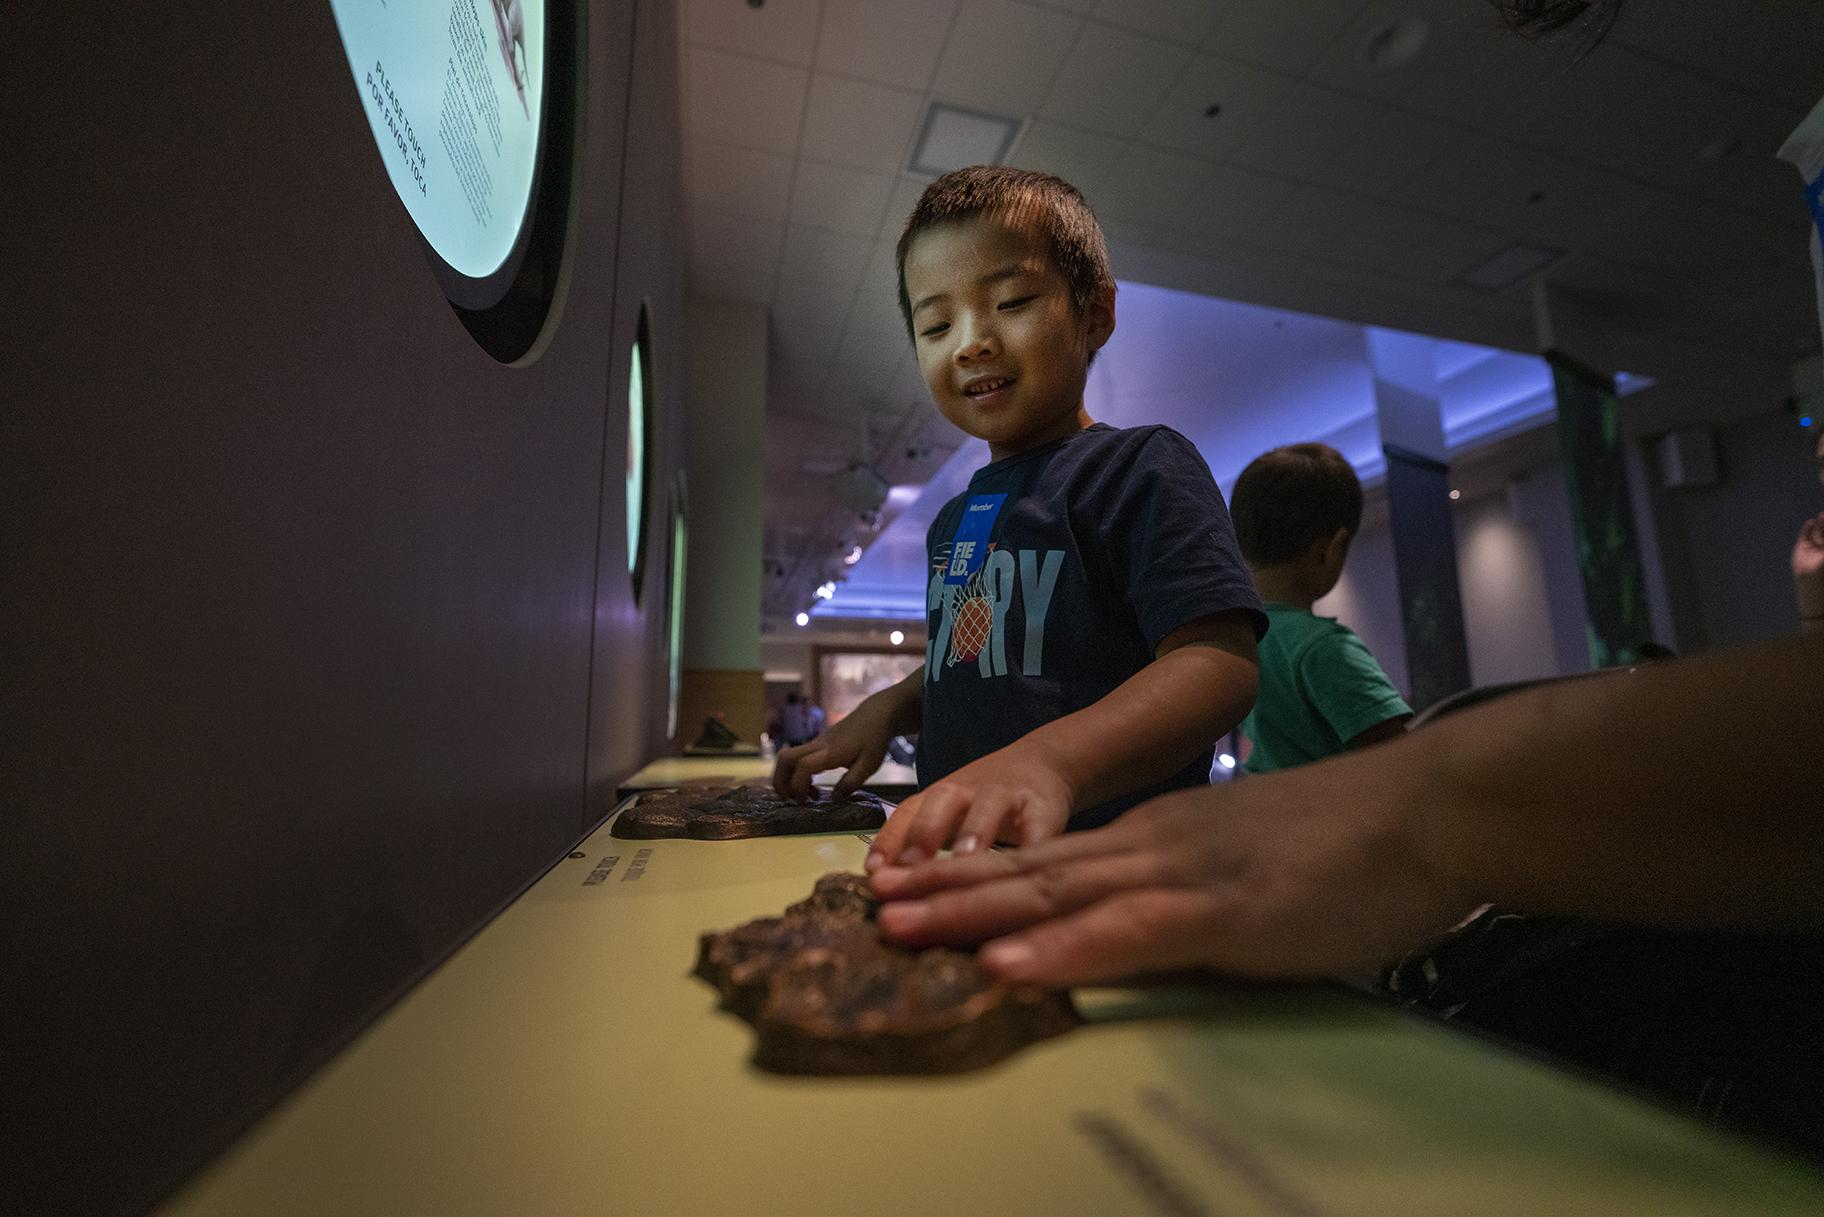 Visitors can feel how the skin textures of various dinosaurs – including the T. Rex and Triceratops – differed as part of new multisensory stations at the Field Museum. (Martin Baumgaertner / Field Museum)